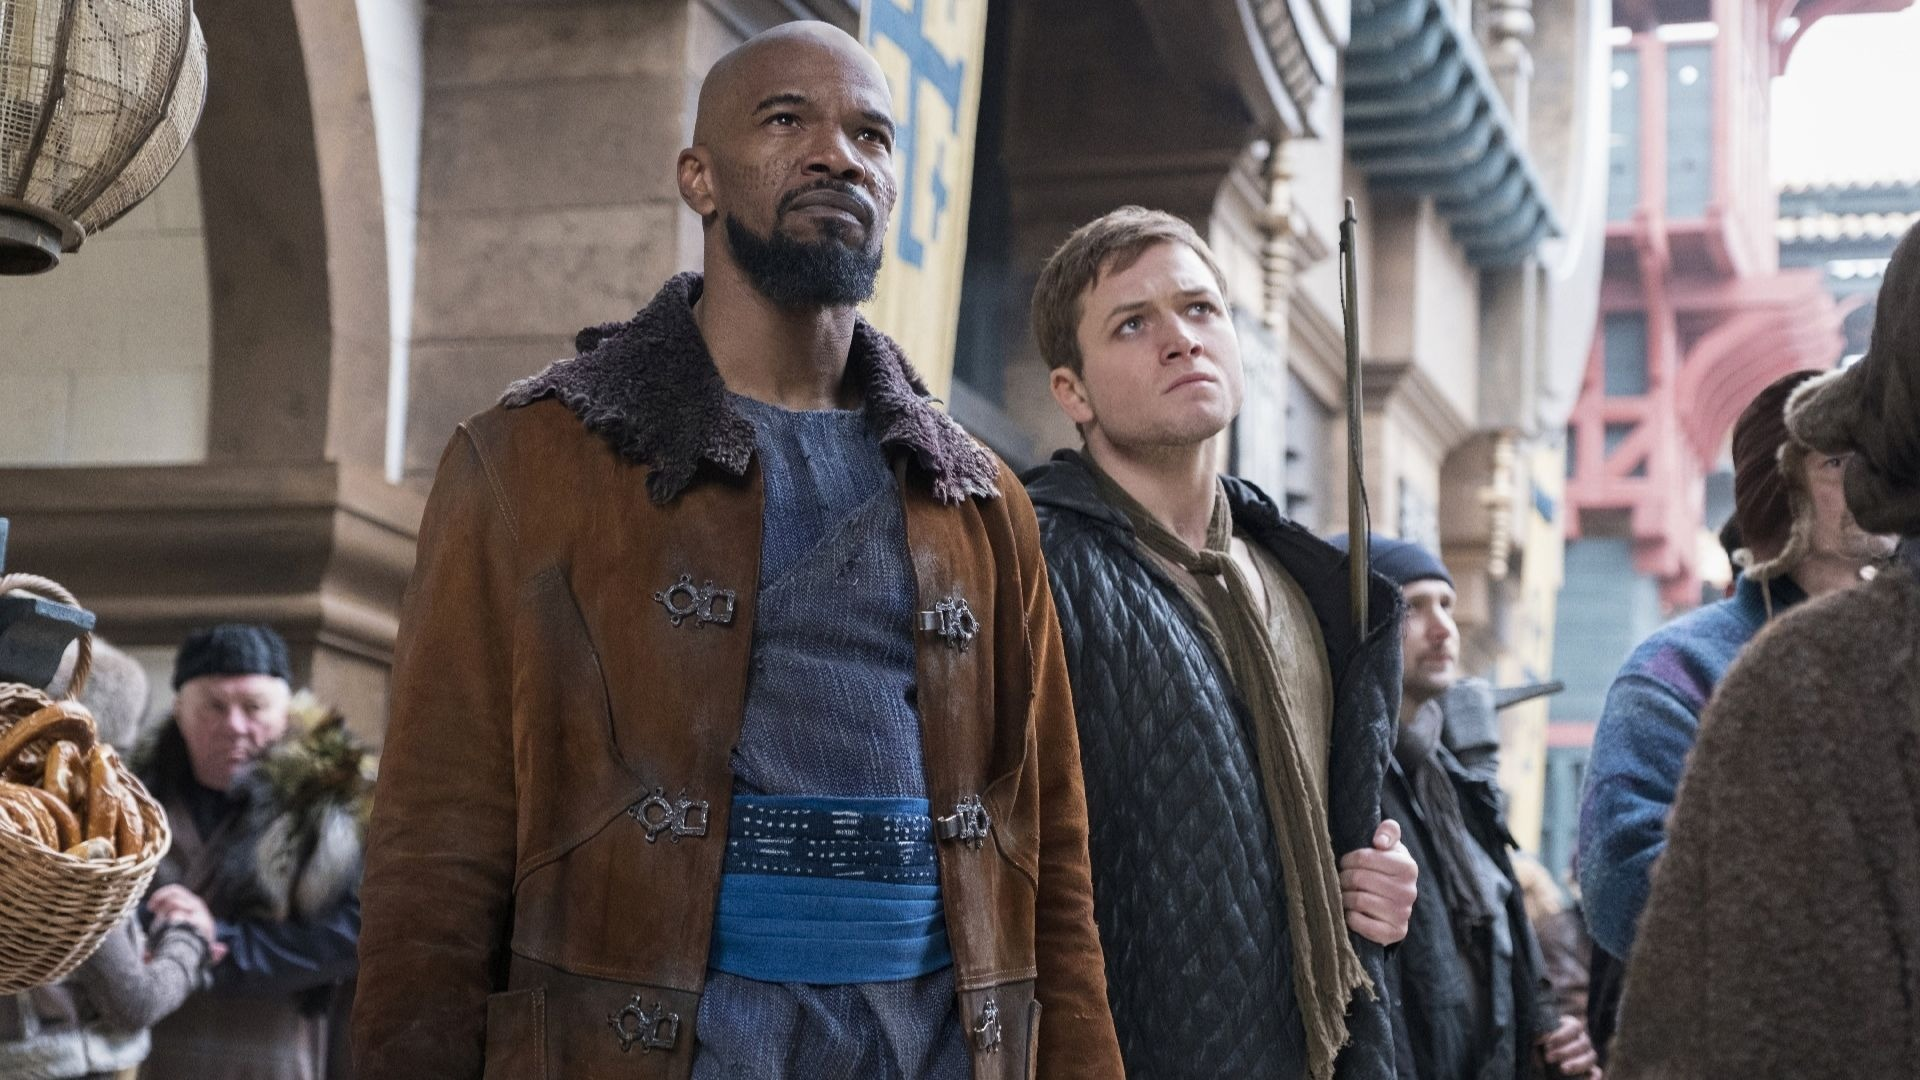 The new Robin Hood movie.